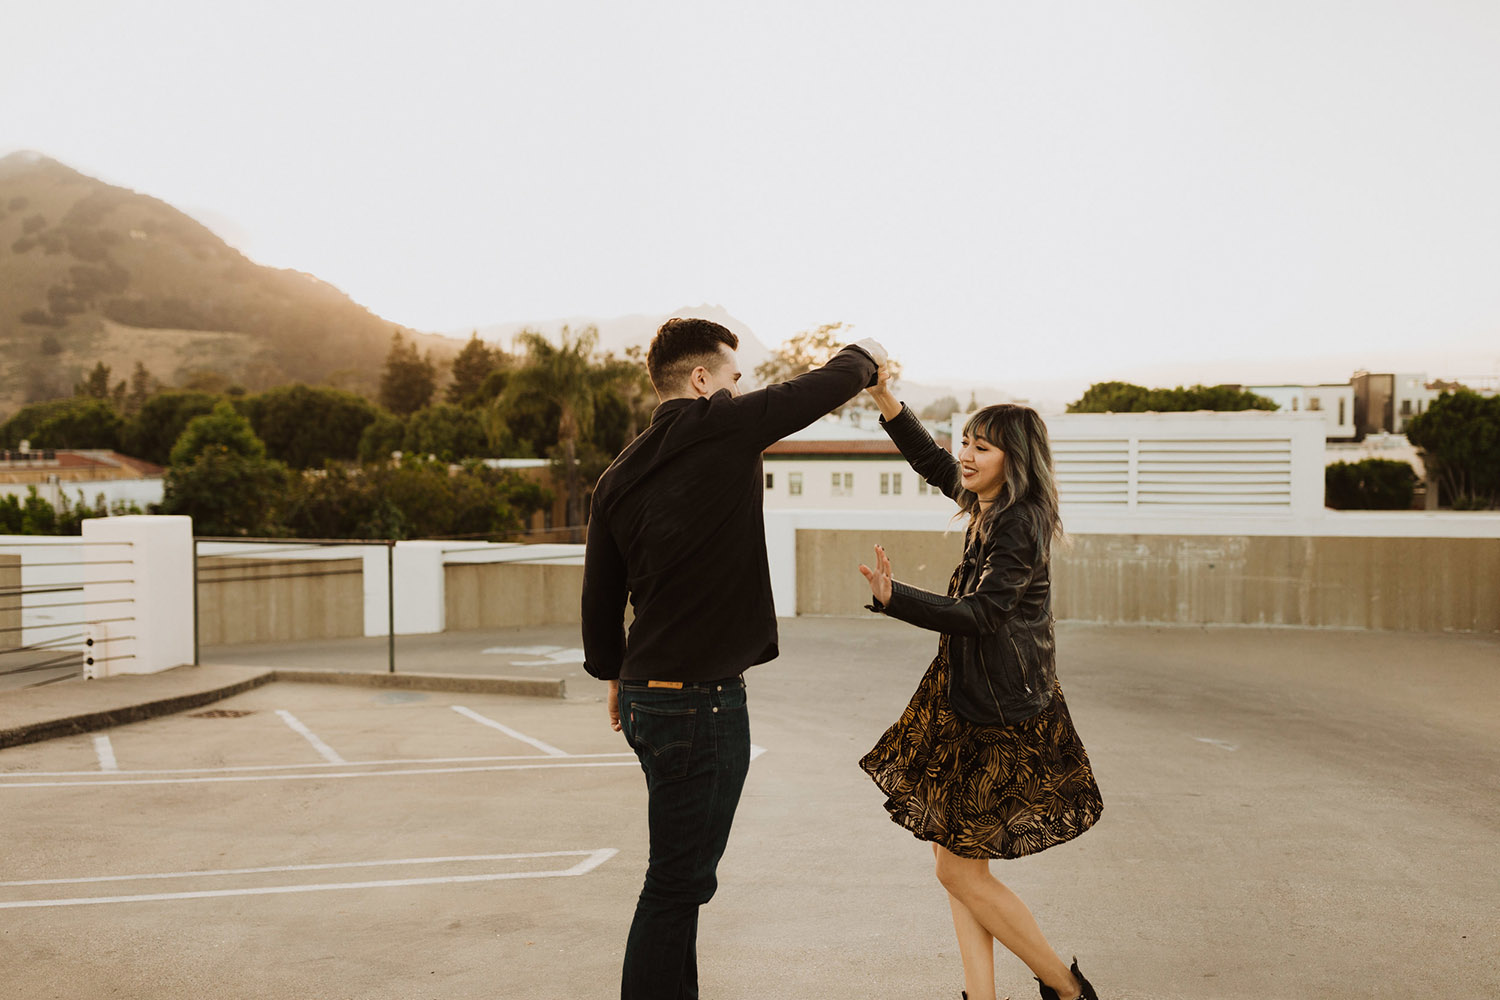 Milk+and+thistle+san+luis+obispo+engagement+session-623.jpg